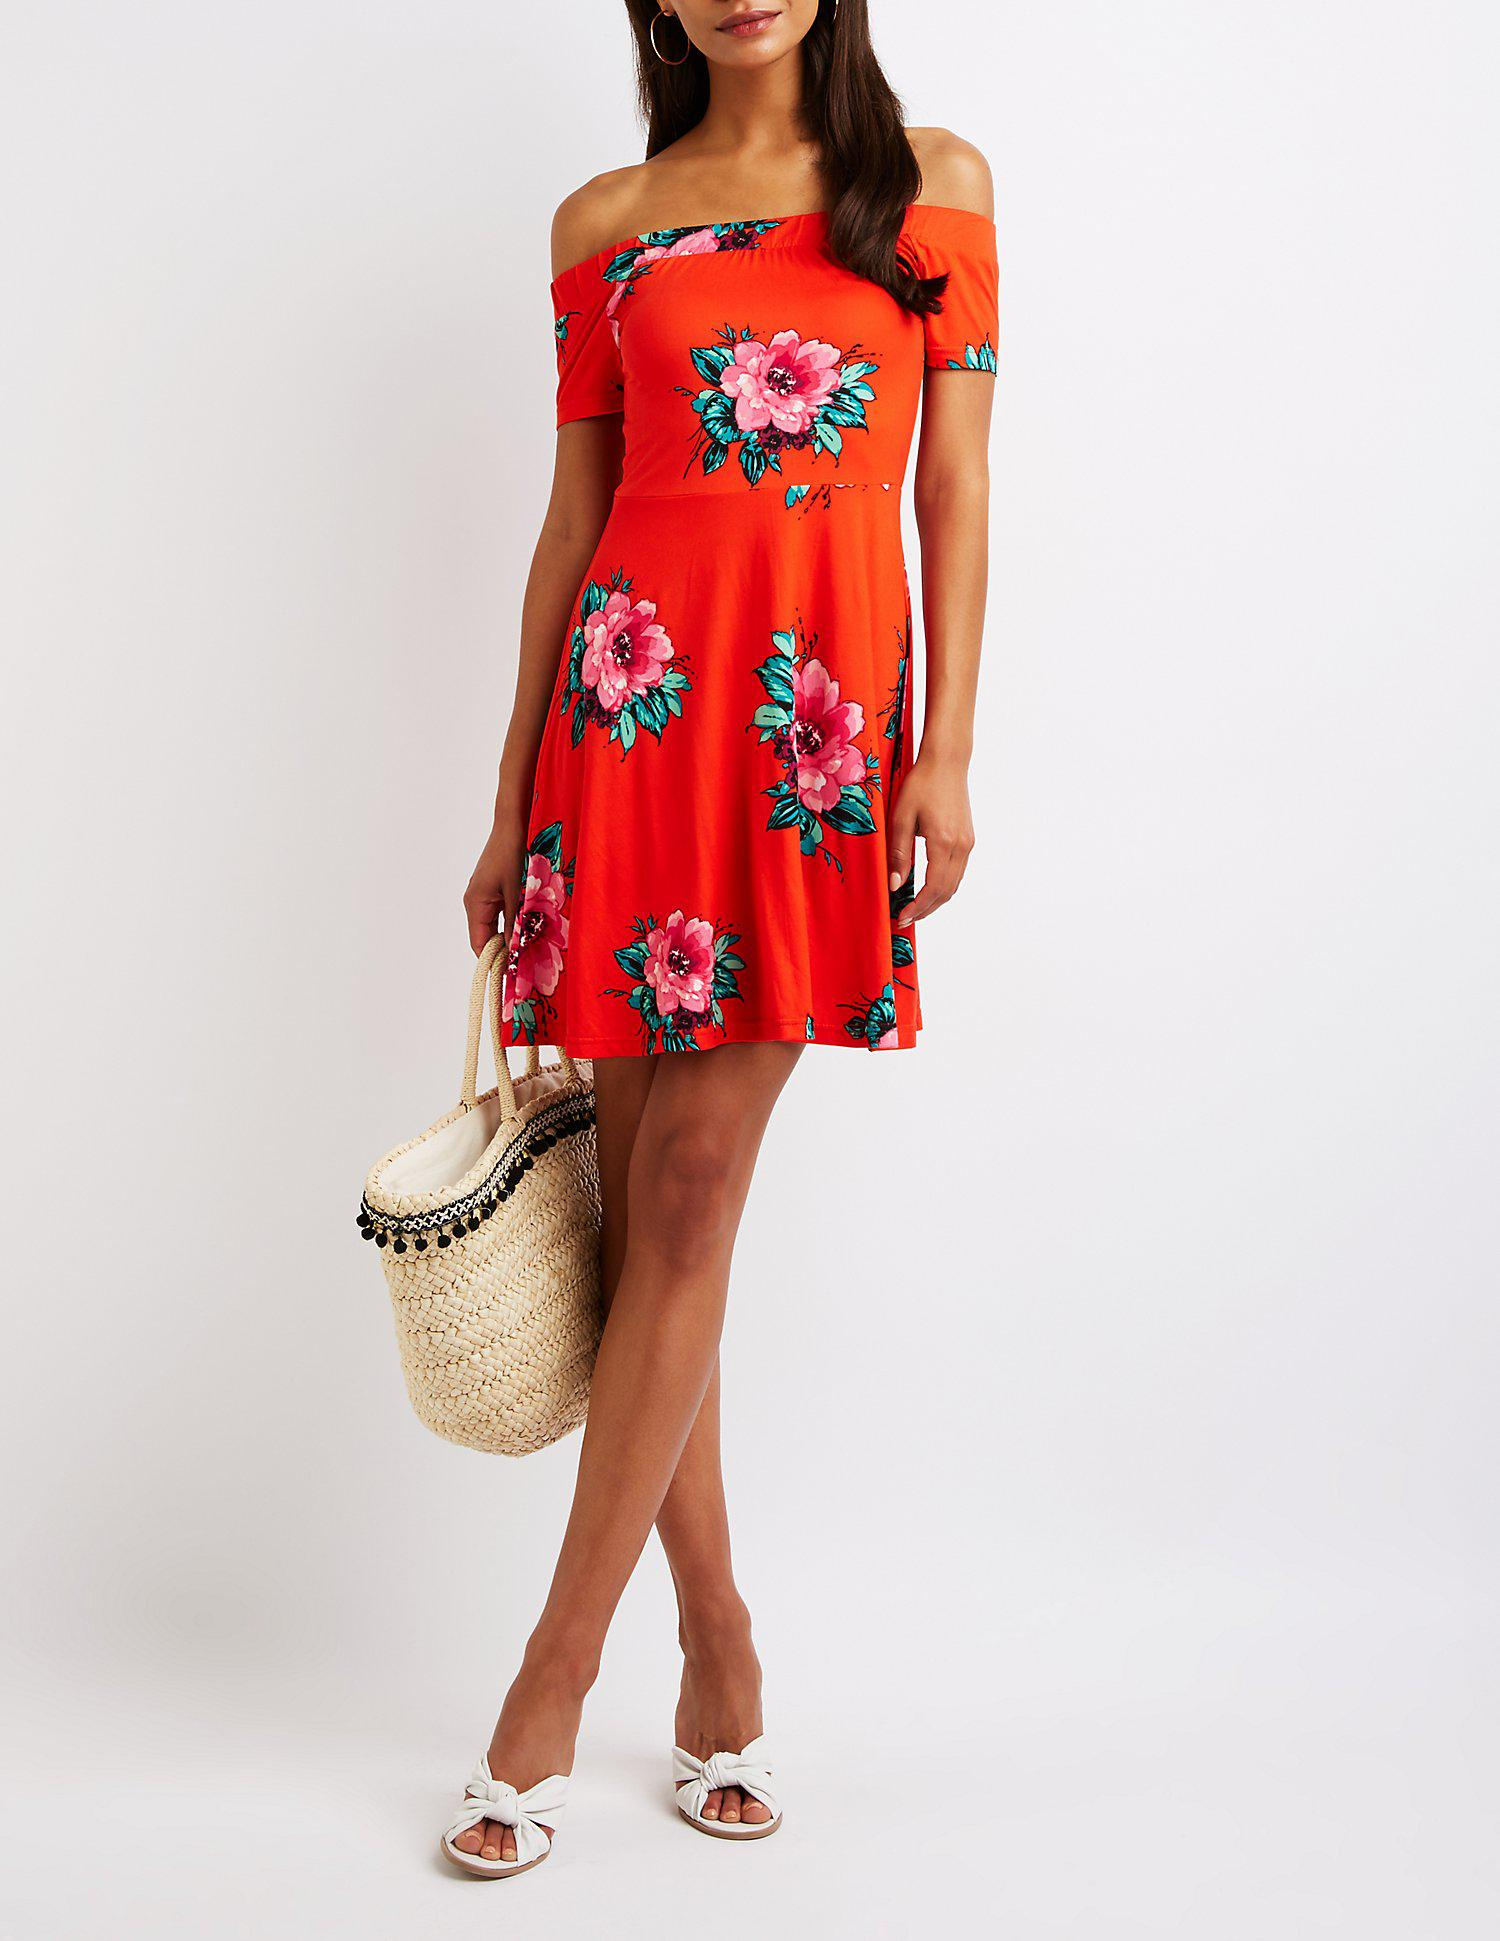 Lyst - Charlotte Russe Printed Off The Shoulder Skater Dress in Red 68eb0aebc